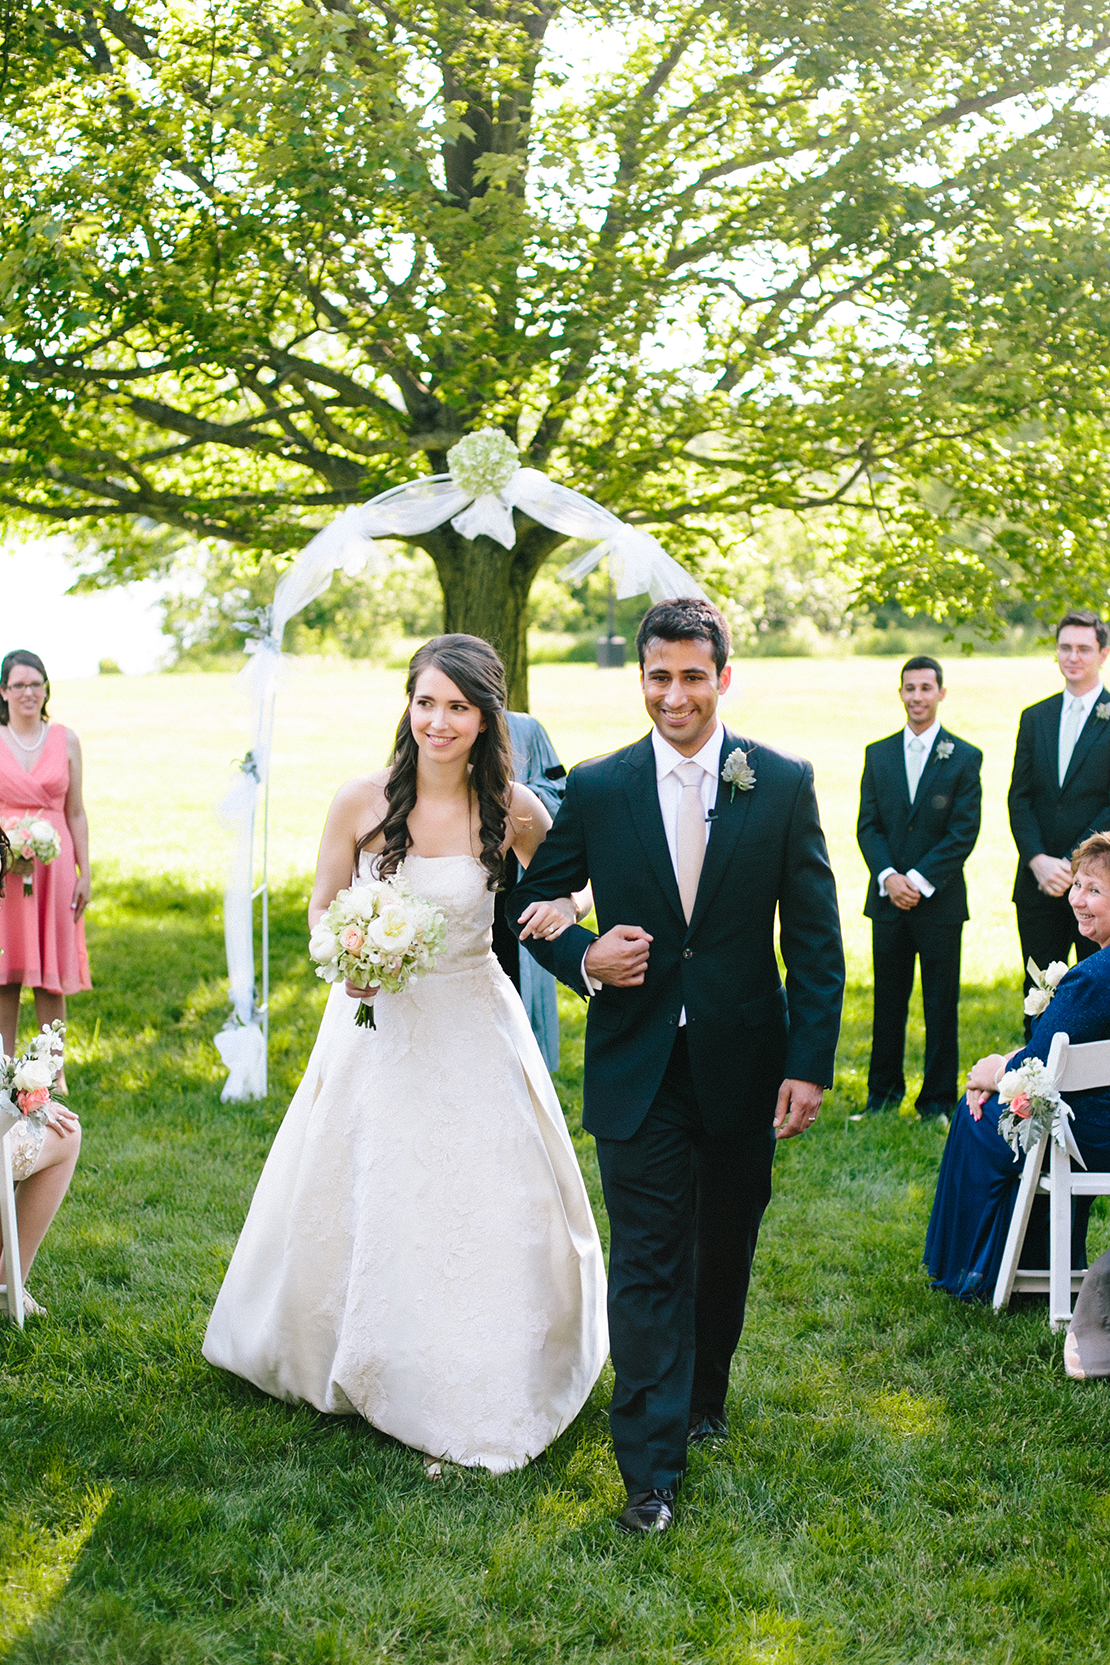 32_bride_groom_walk_down_aisle_just_married_outdoor_wellesley_college_wedding